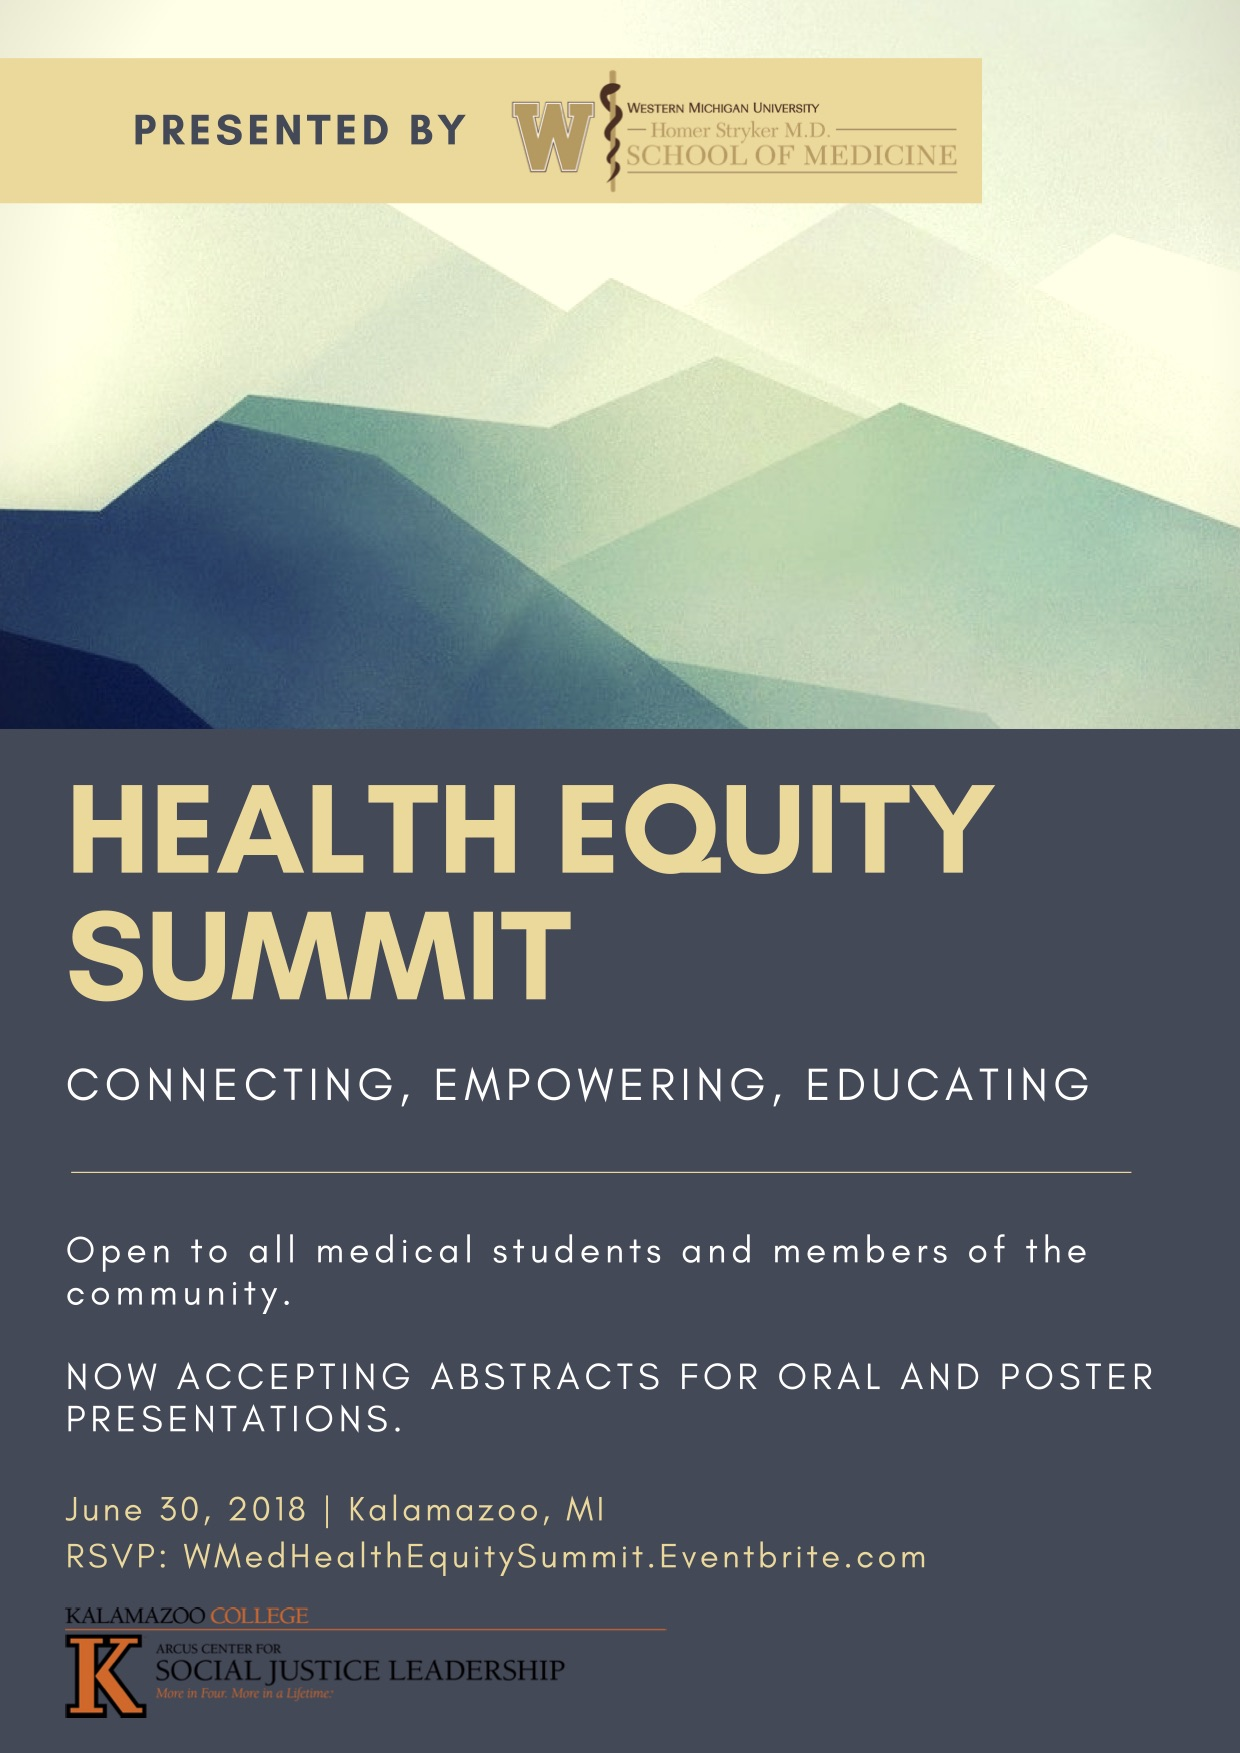 health equity flyer 2018. Inviting all medical students and community members to attend